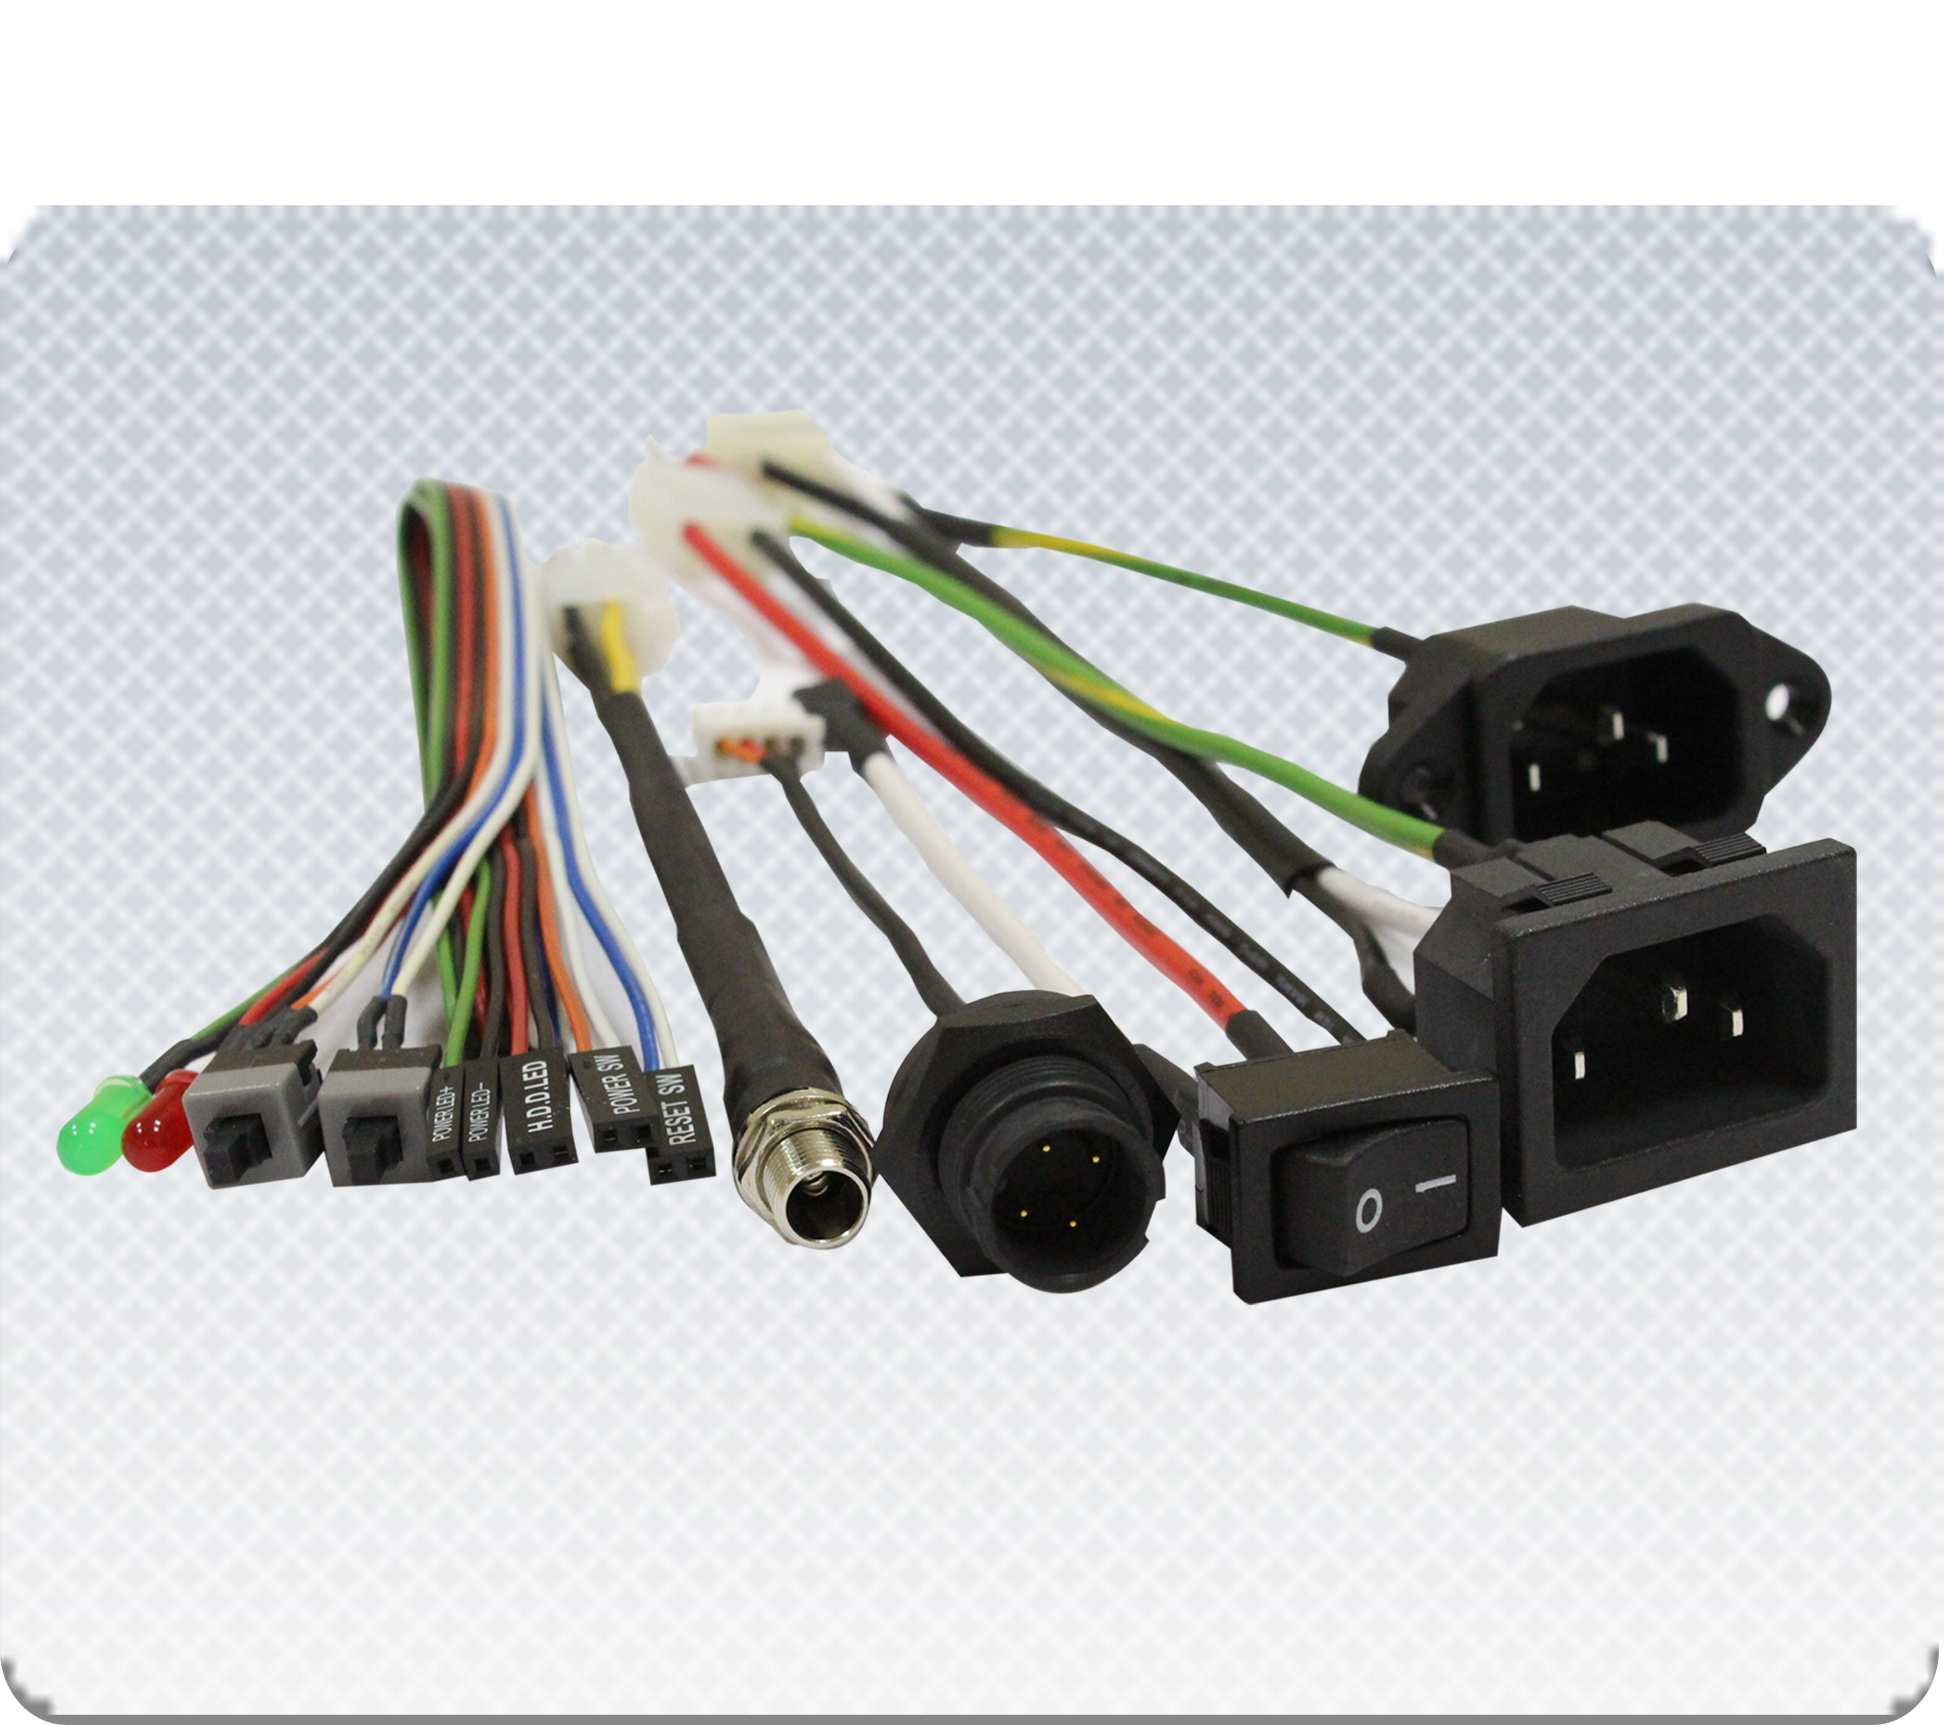 Wiring Harness(1)(3) molded cable, molded cable manufacturer & supplier molded wire harness at edmiracle.co